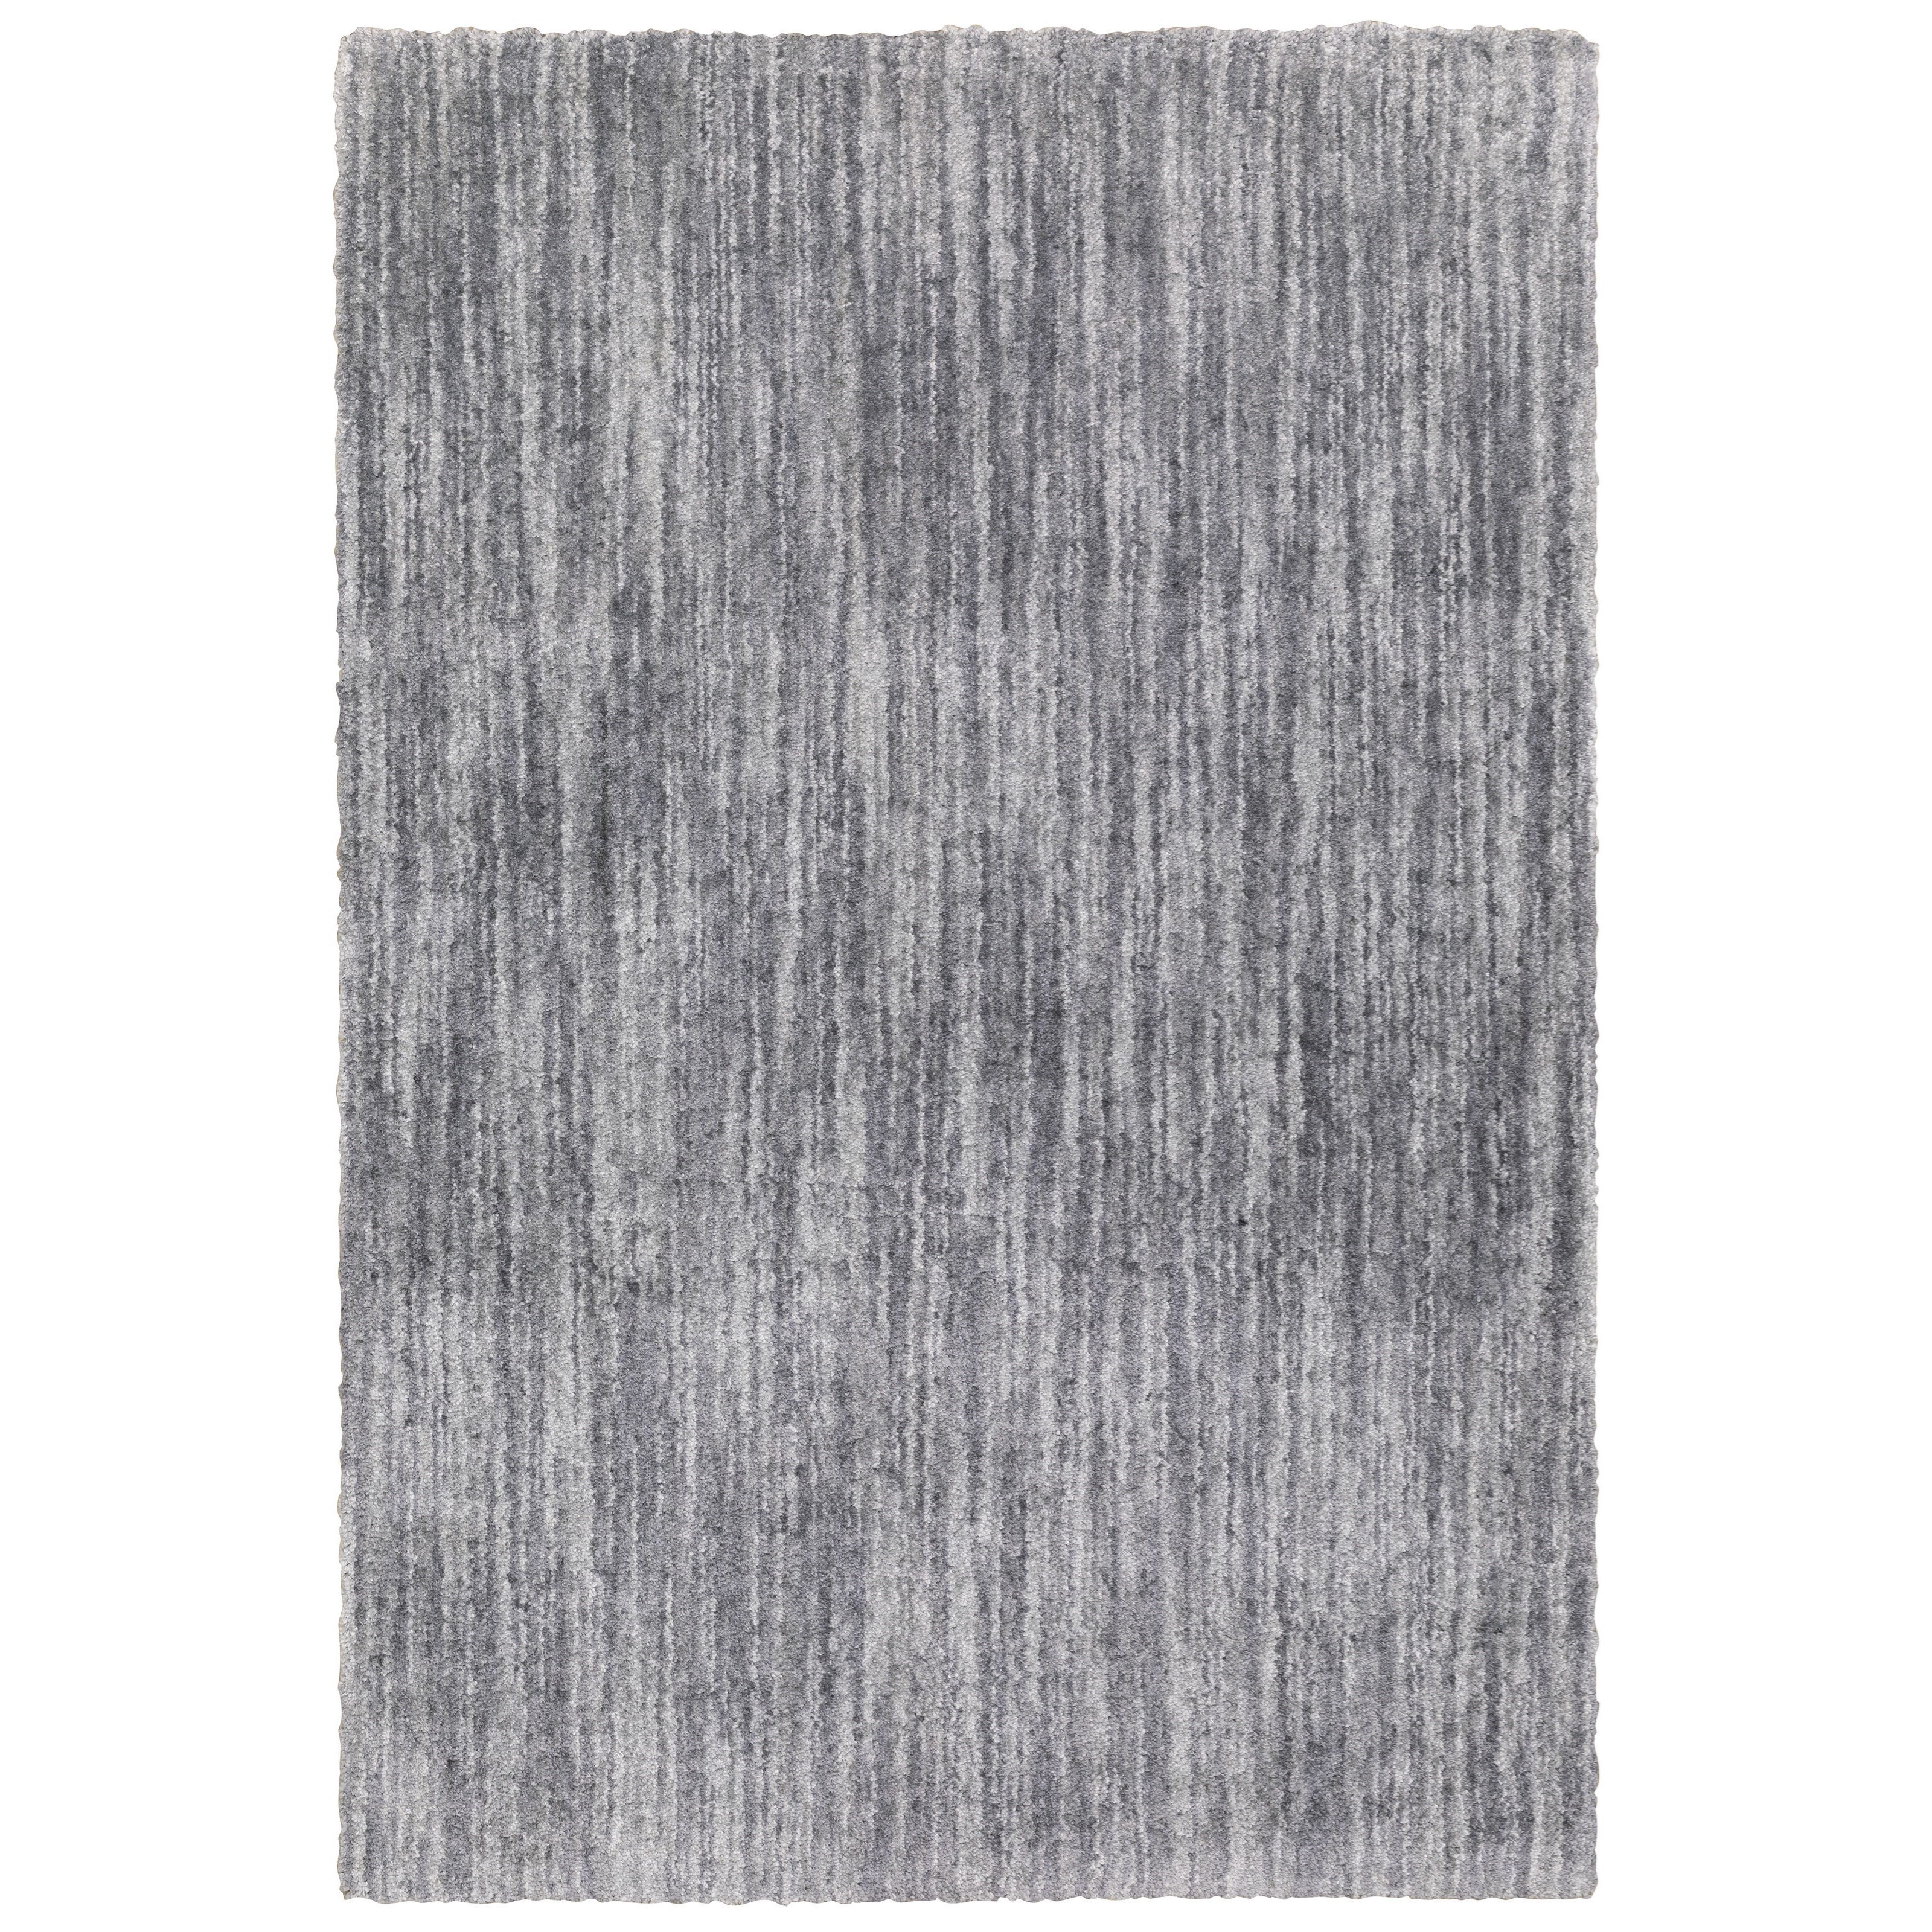 "ASPEN 9'10"" X 12'10"" Rectangle Rug by Oriental Weavers at Darvin Furniture"